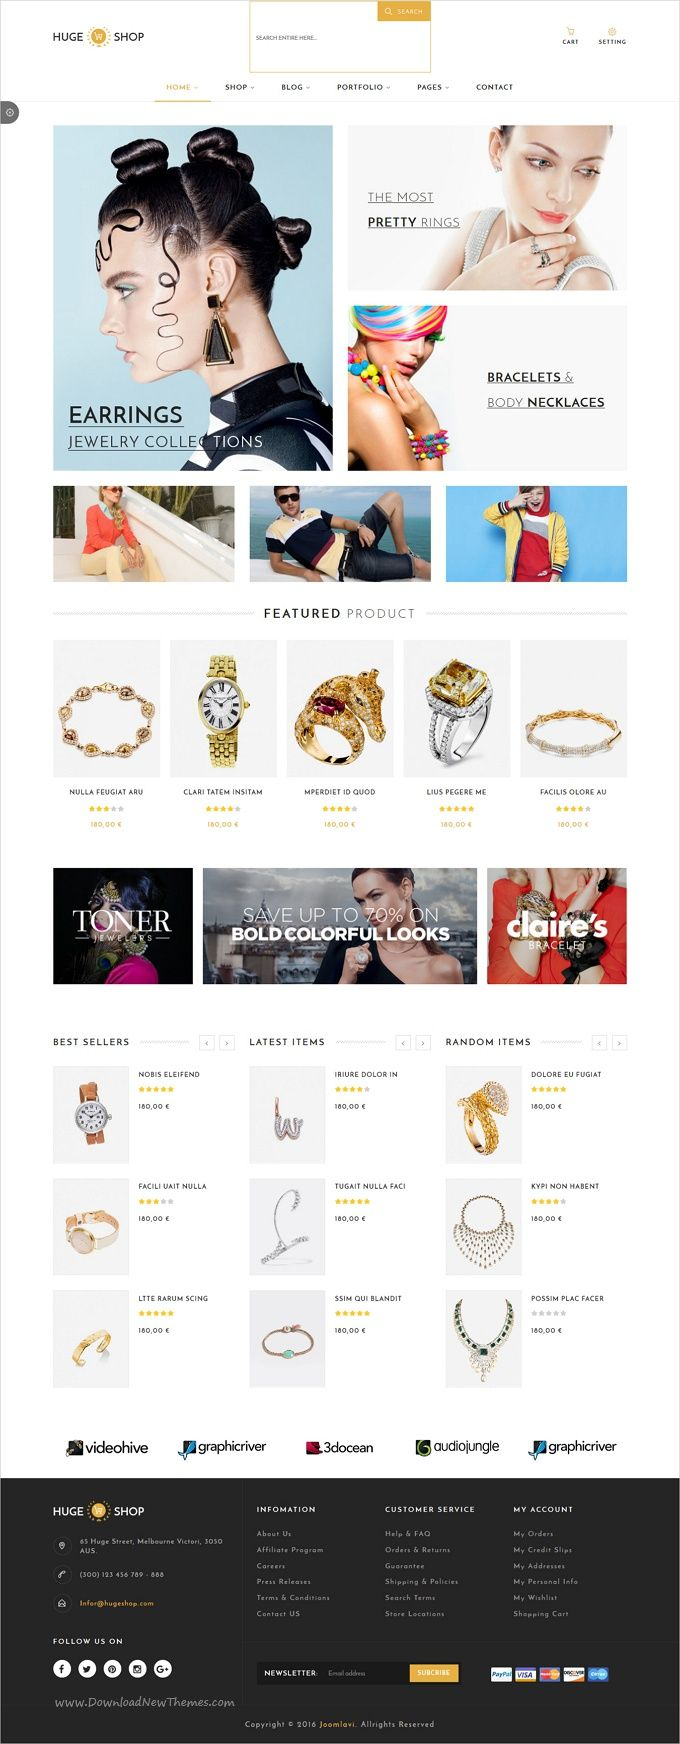 Pin by Cmsgadget on Best themes selection Layout